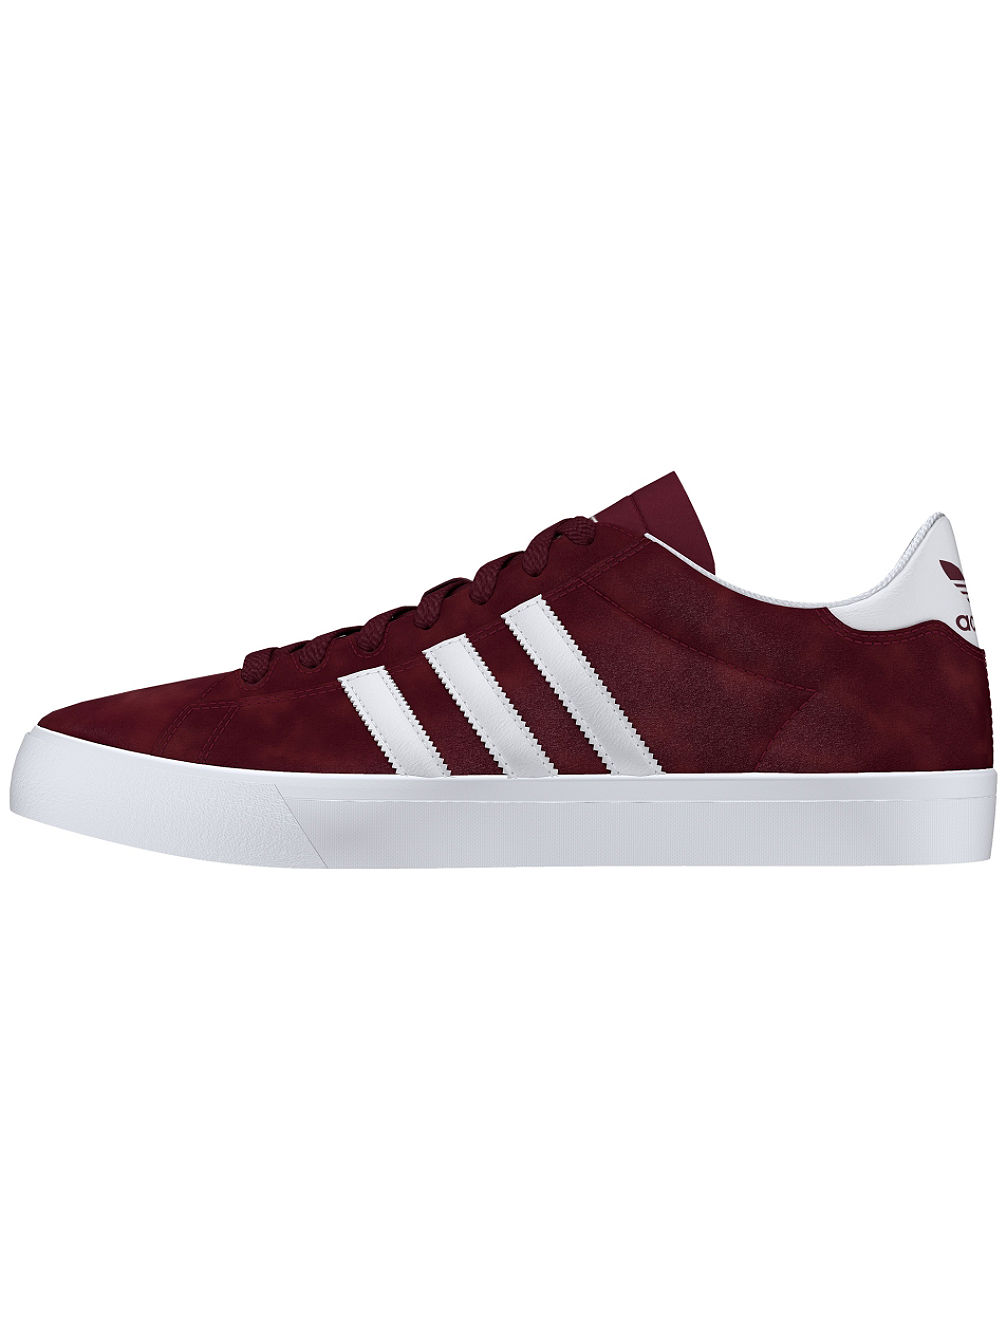 Buy adidas Skateboarding Campus Vulc II ADV Skate Shoes online at ... 4053c750e